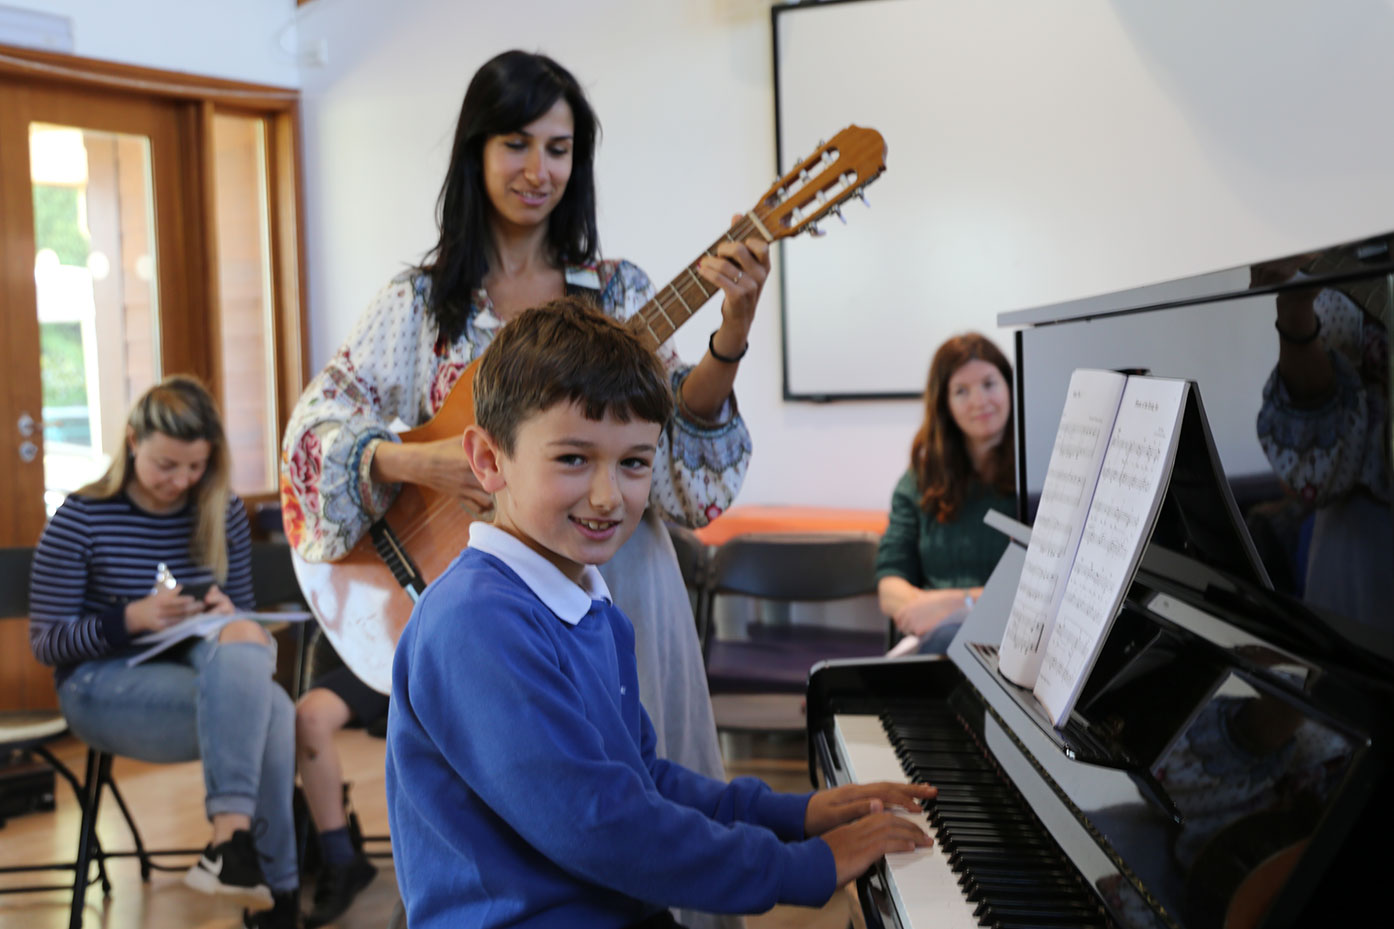 Parent/Carer and Child Duets